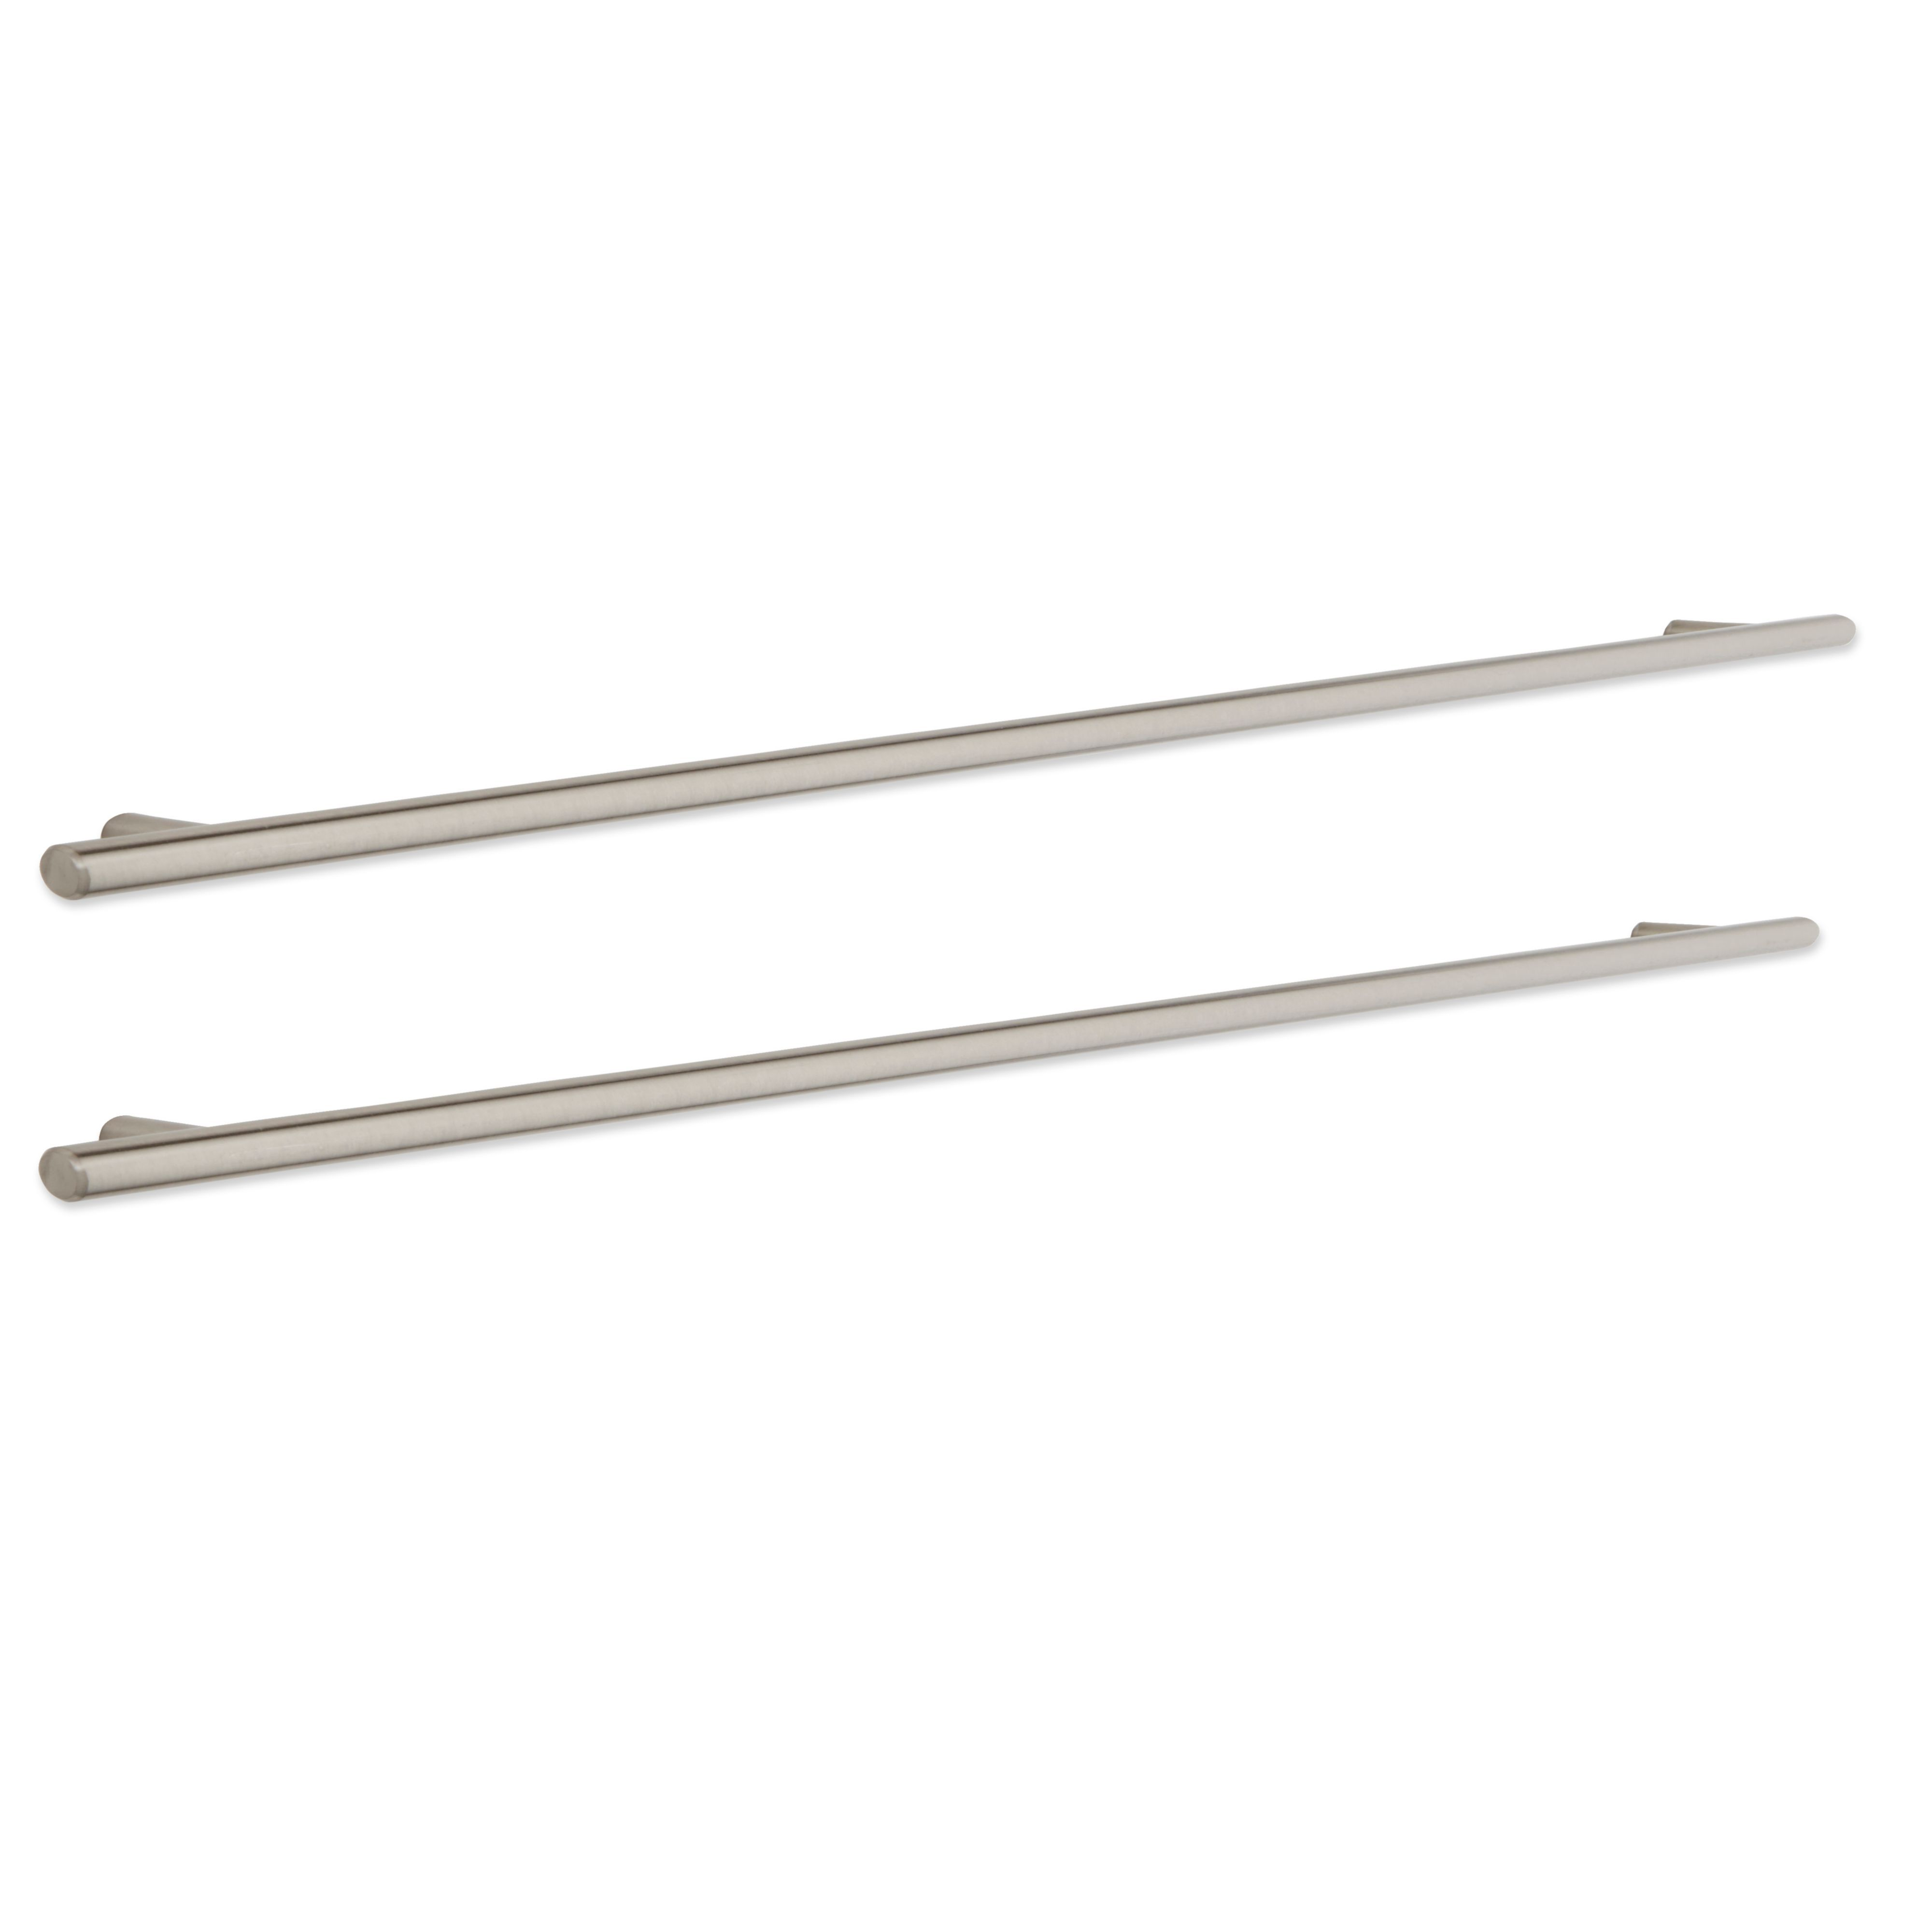 It Kitchens Brushed Nickel Effect Bar Cabinet Handle, Pack Of 2